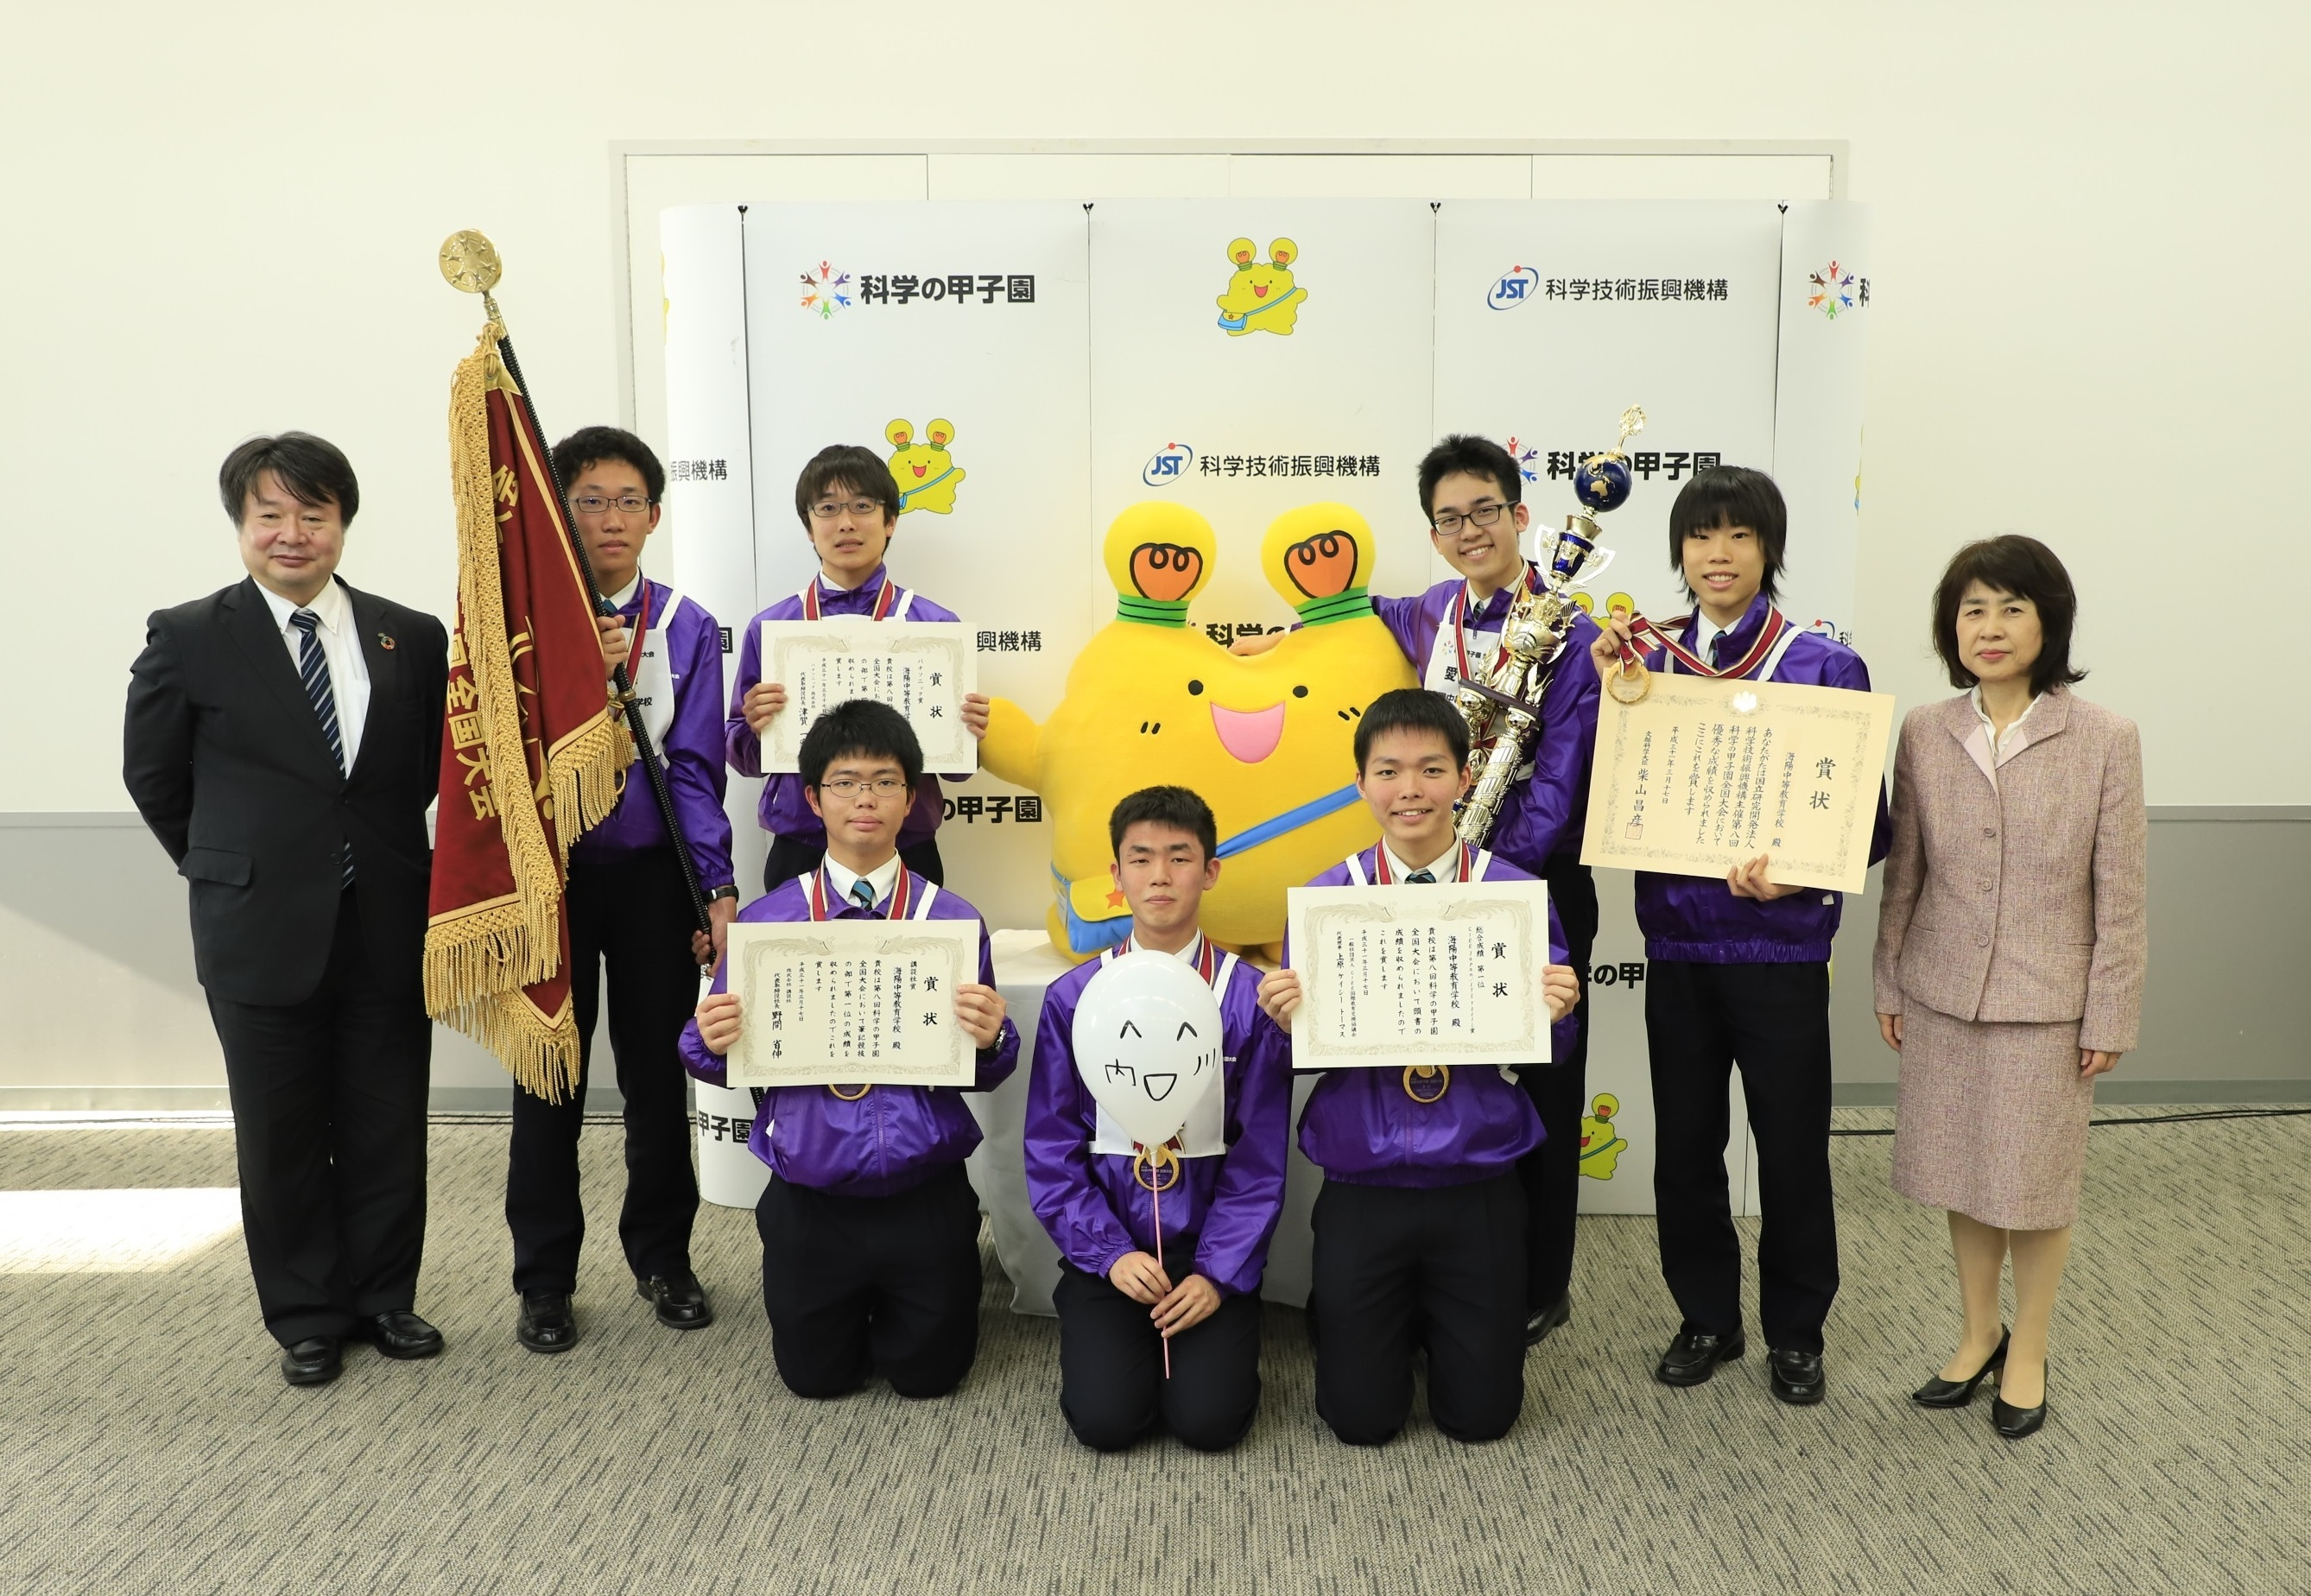 Kaiyo Academy, 2019 Science Olympiad Global Ambassador Team from Japan